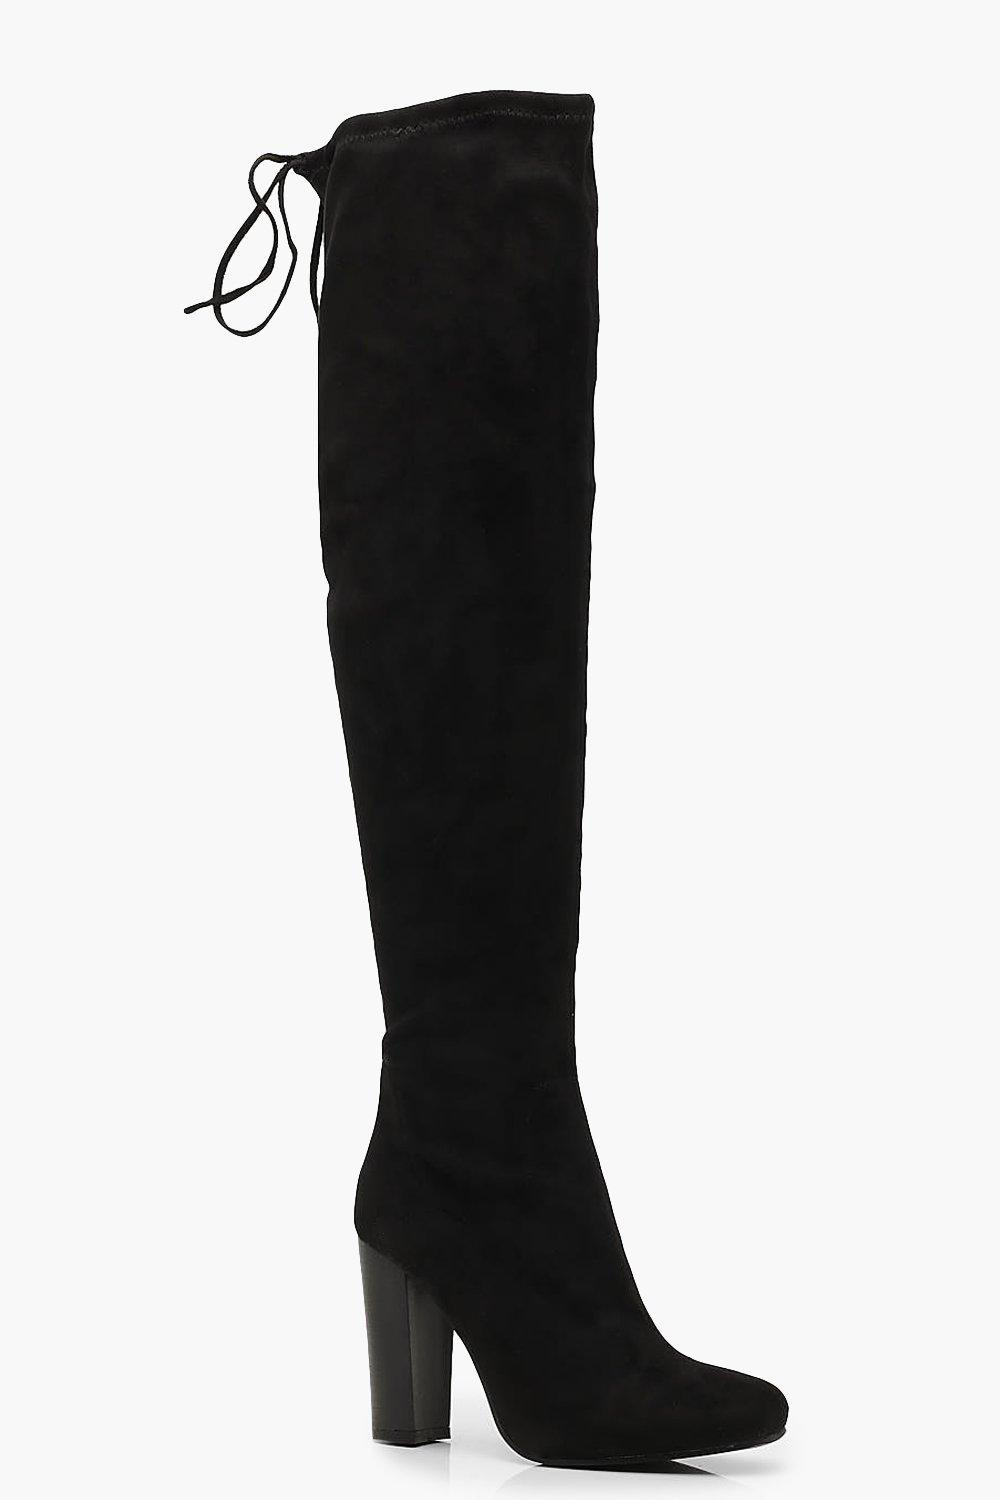 Tie Back Block Heel Over the Knee Boots